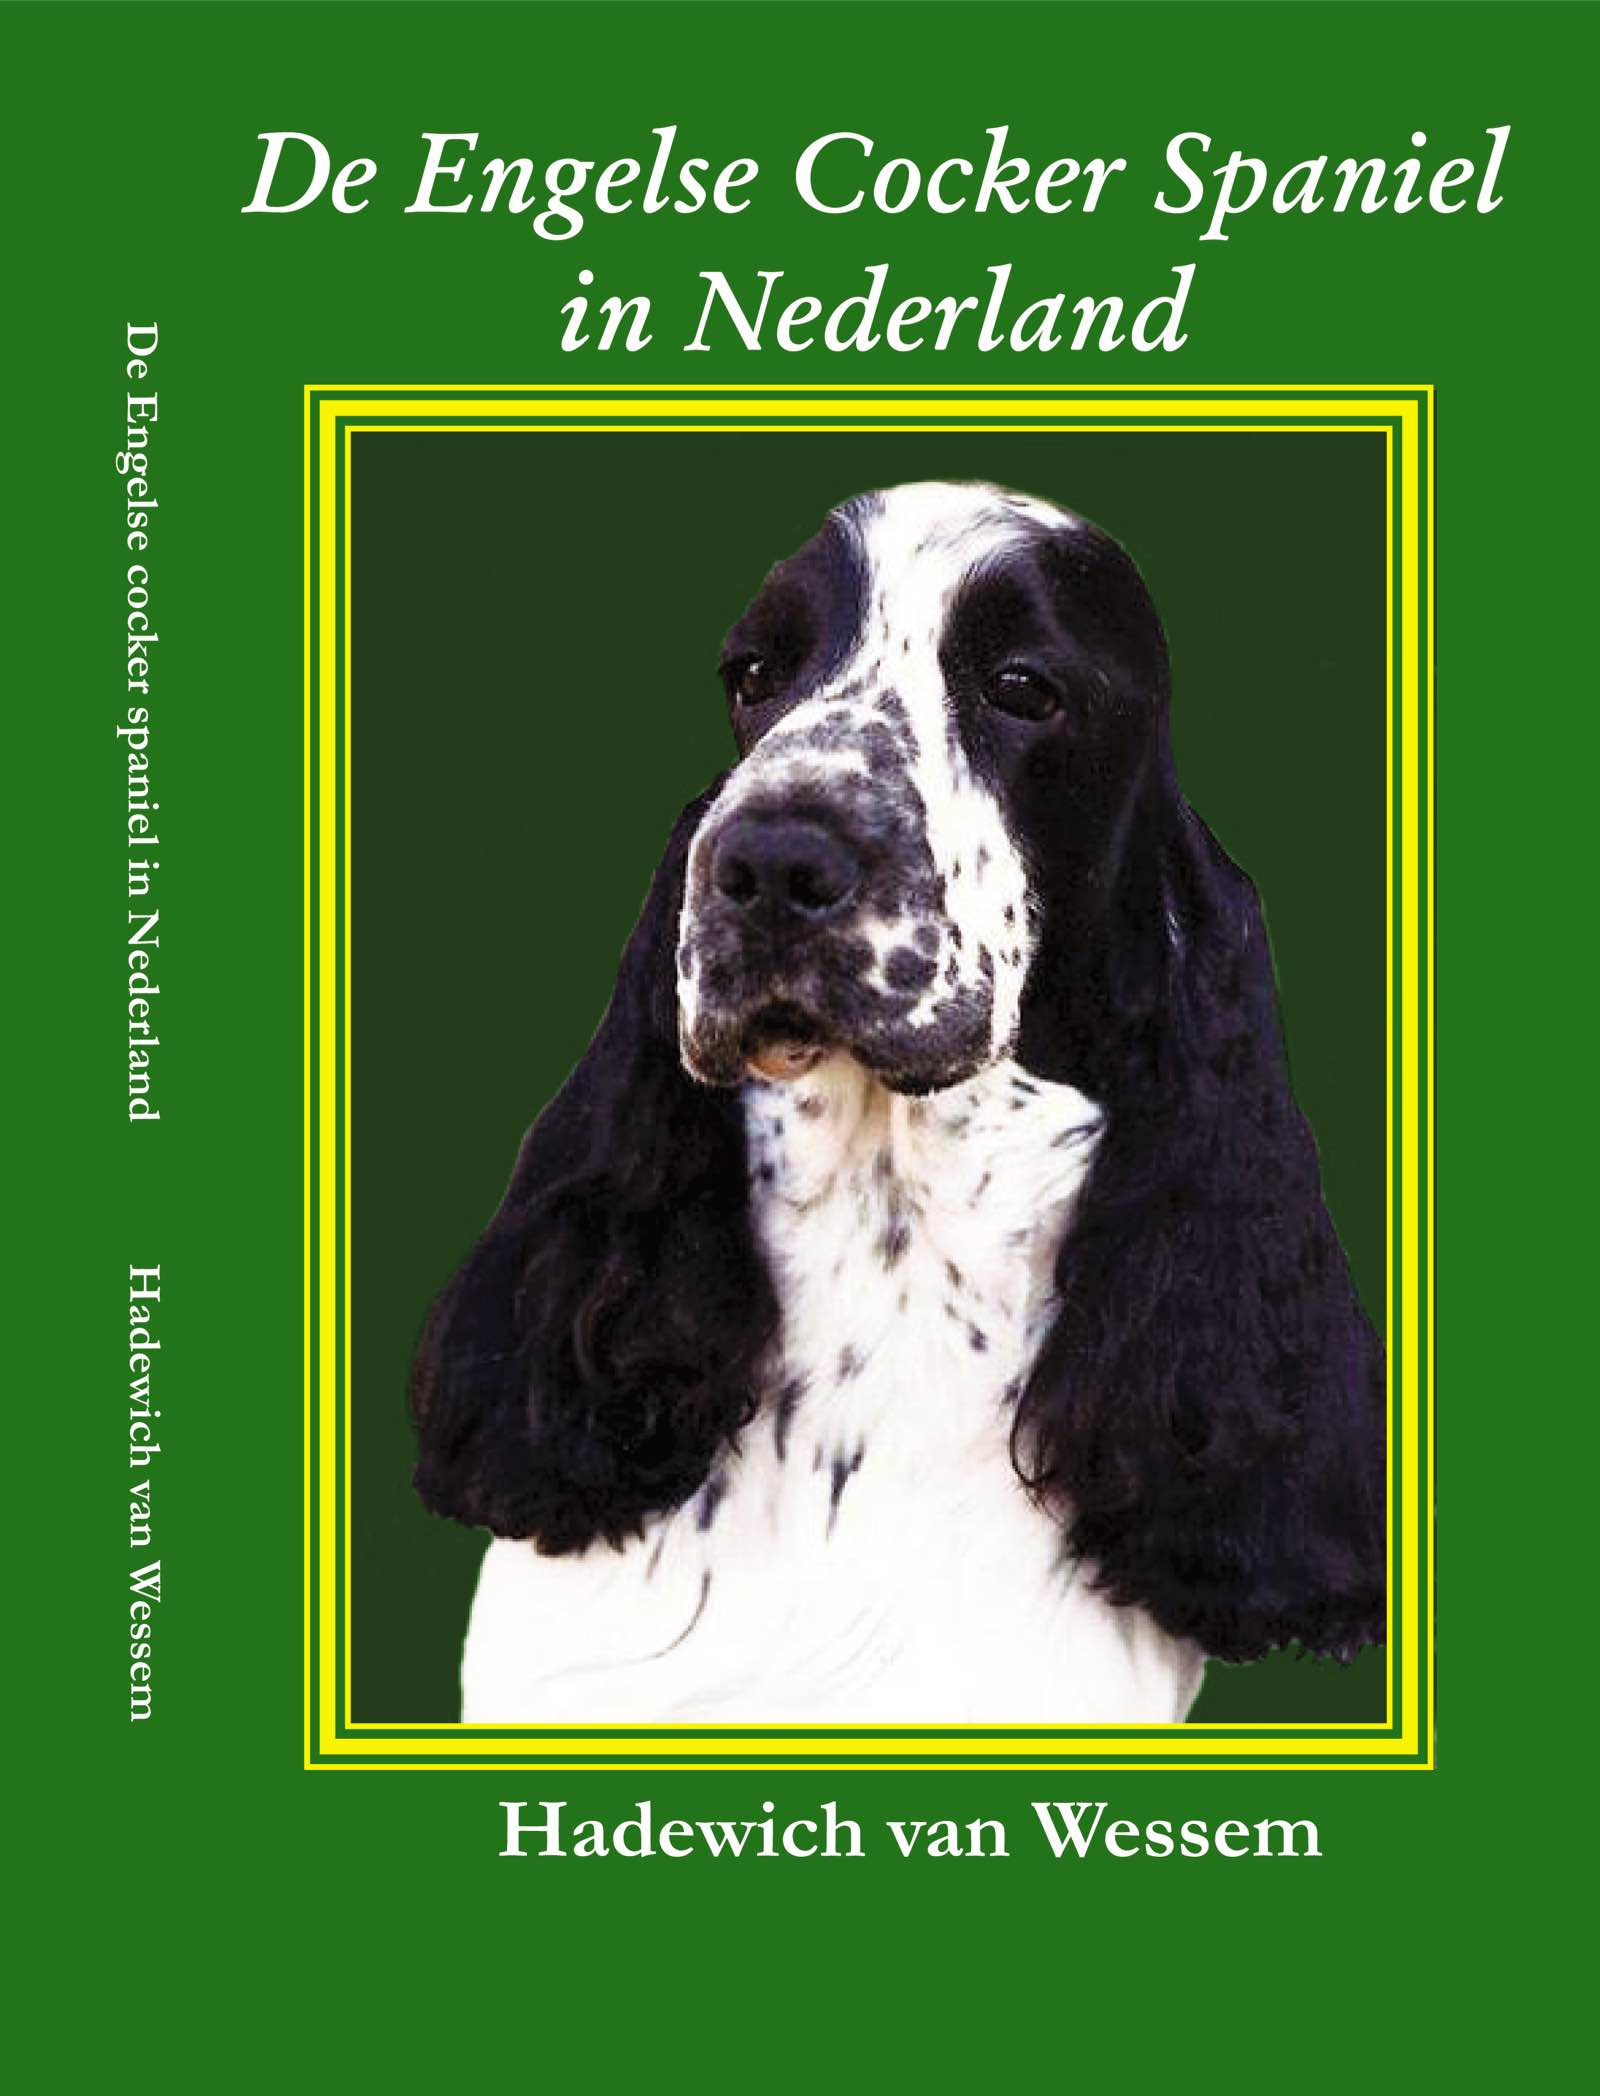 Engelse cocker spaniels in Nederland